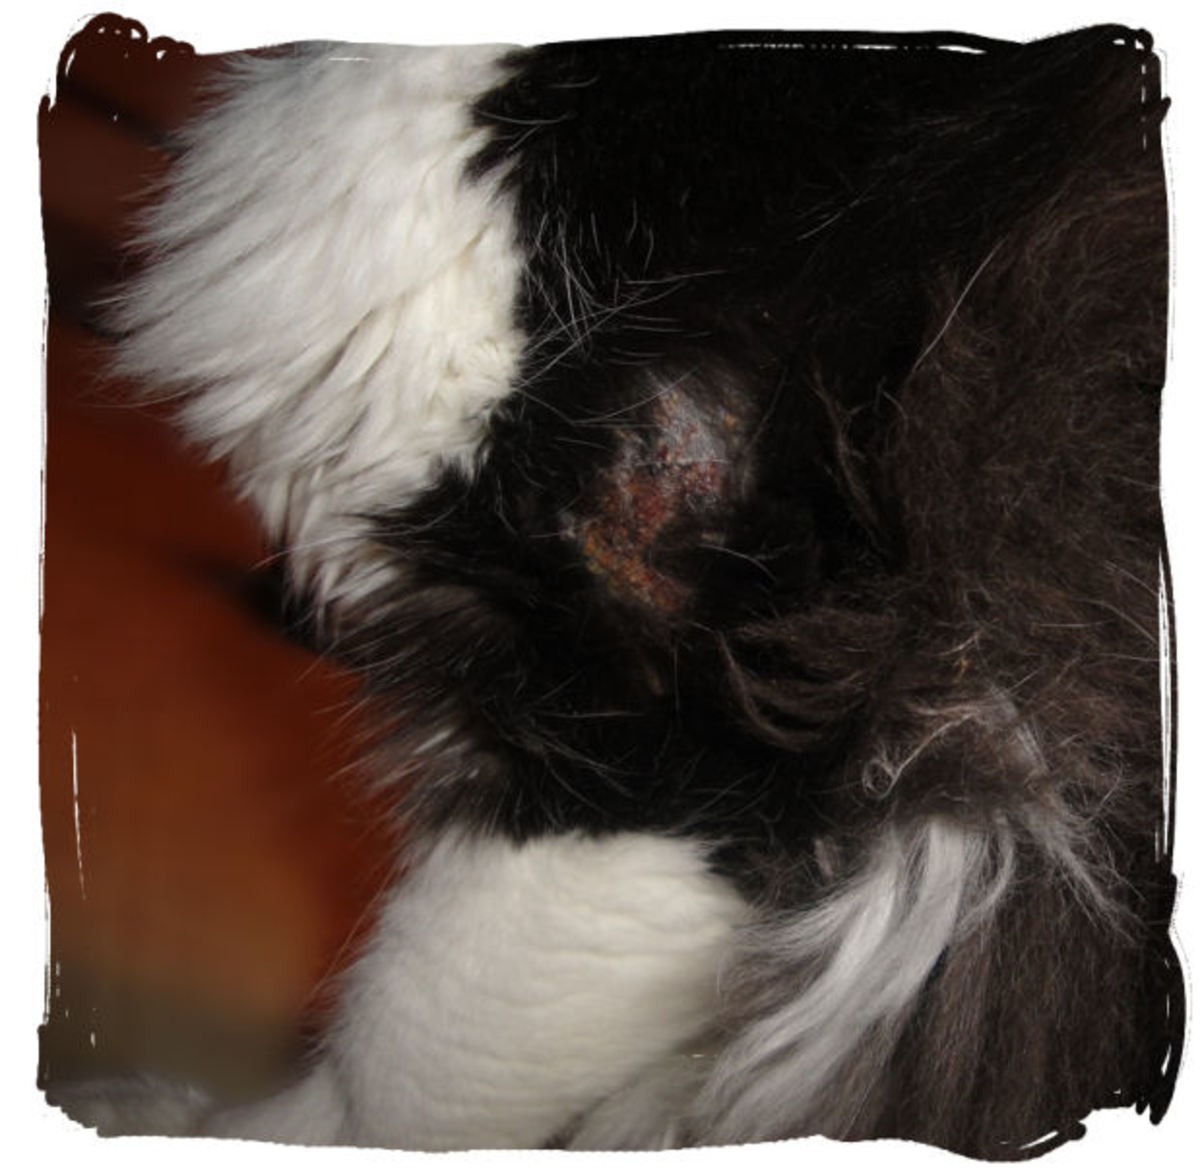 Hot Spot With Broken Skin: Here's an example of a hot spot on my cat. This is when it is still healing and just starting to dry up. You can see some matted fur around the edges.